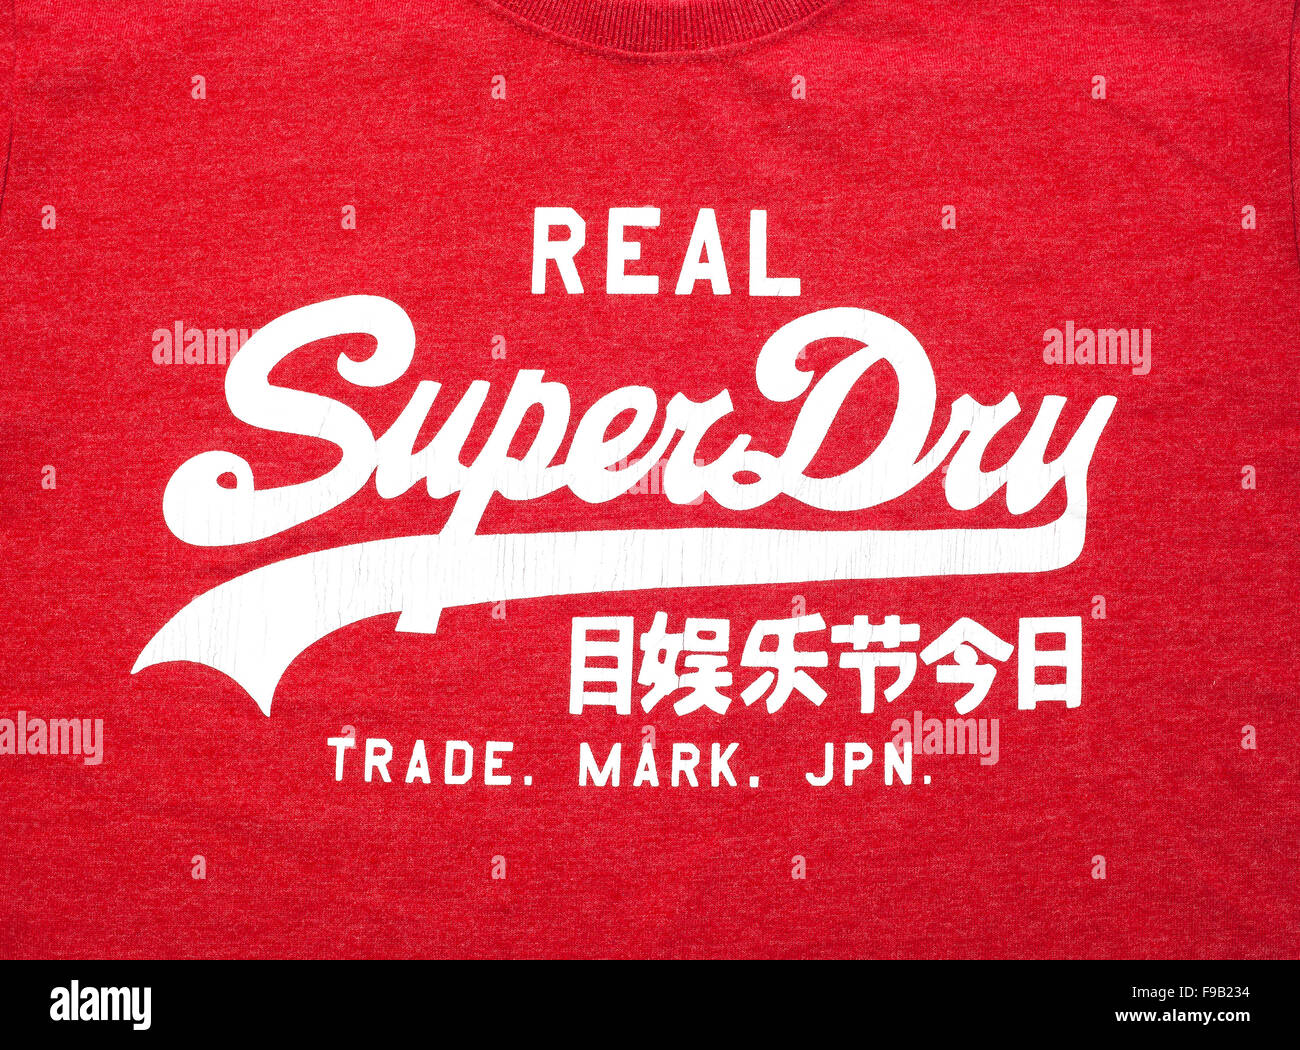 A Red Superdry Tee Shirt showing the Logo on a white background - Stock Image